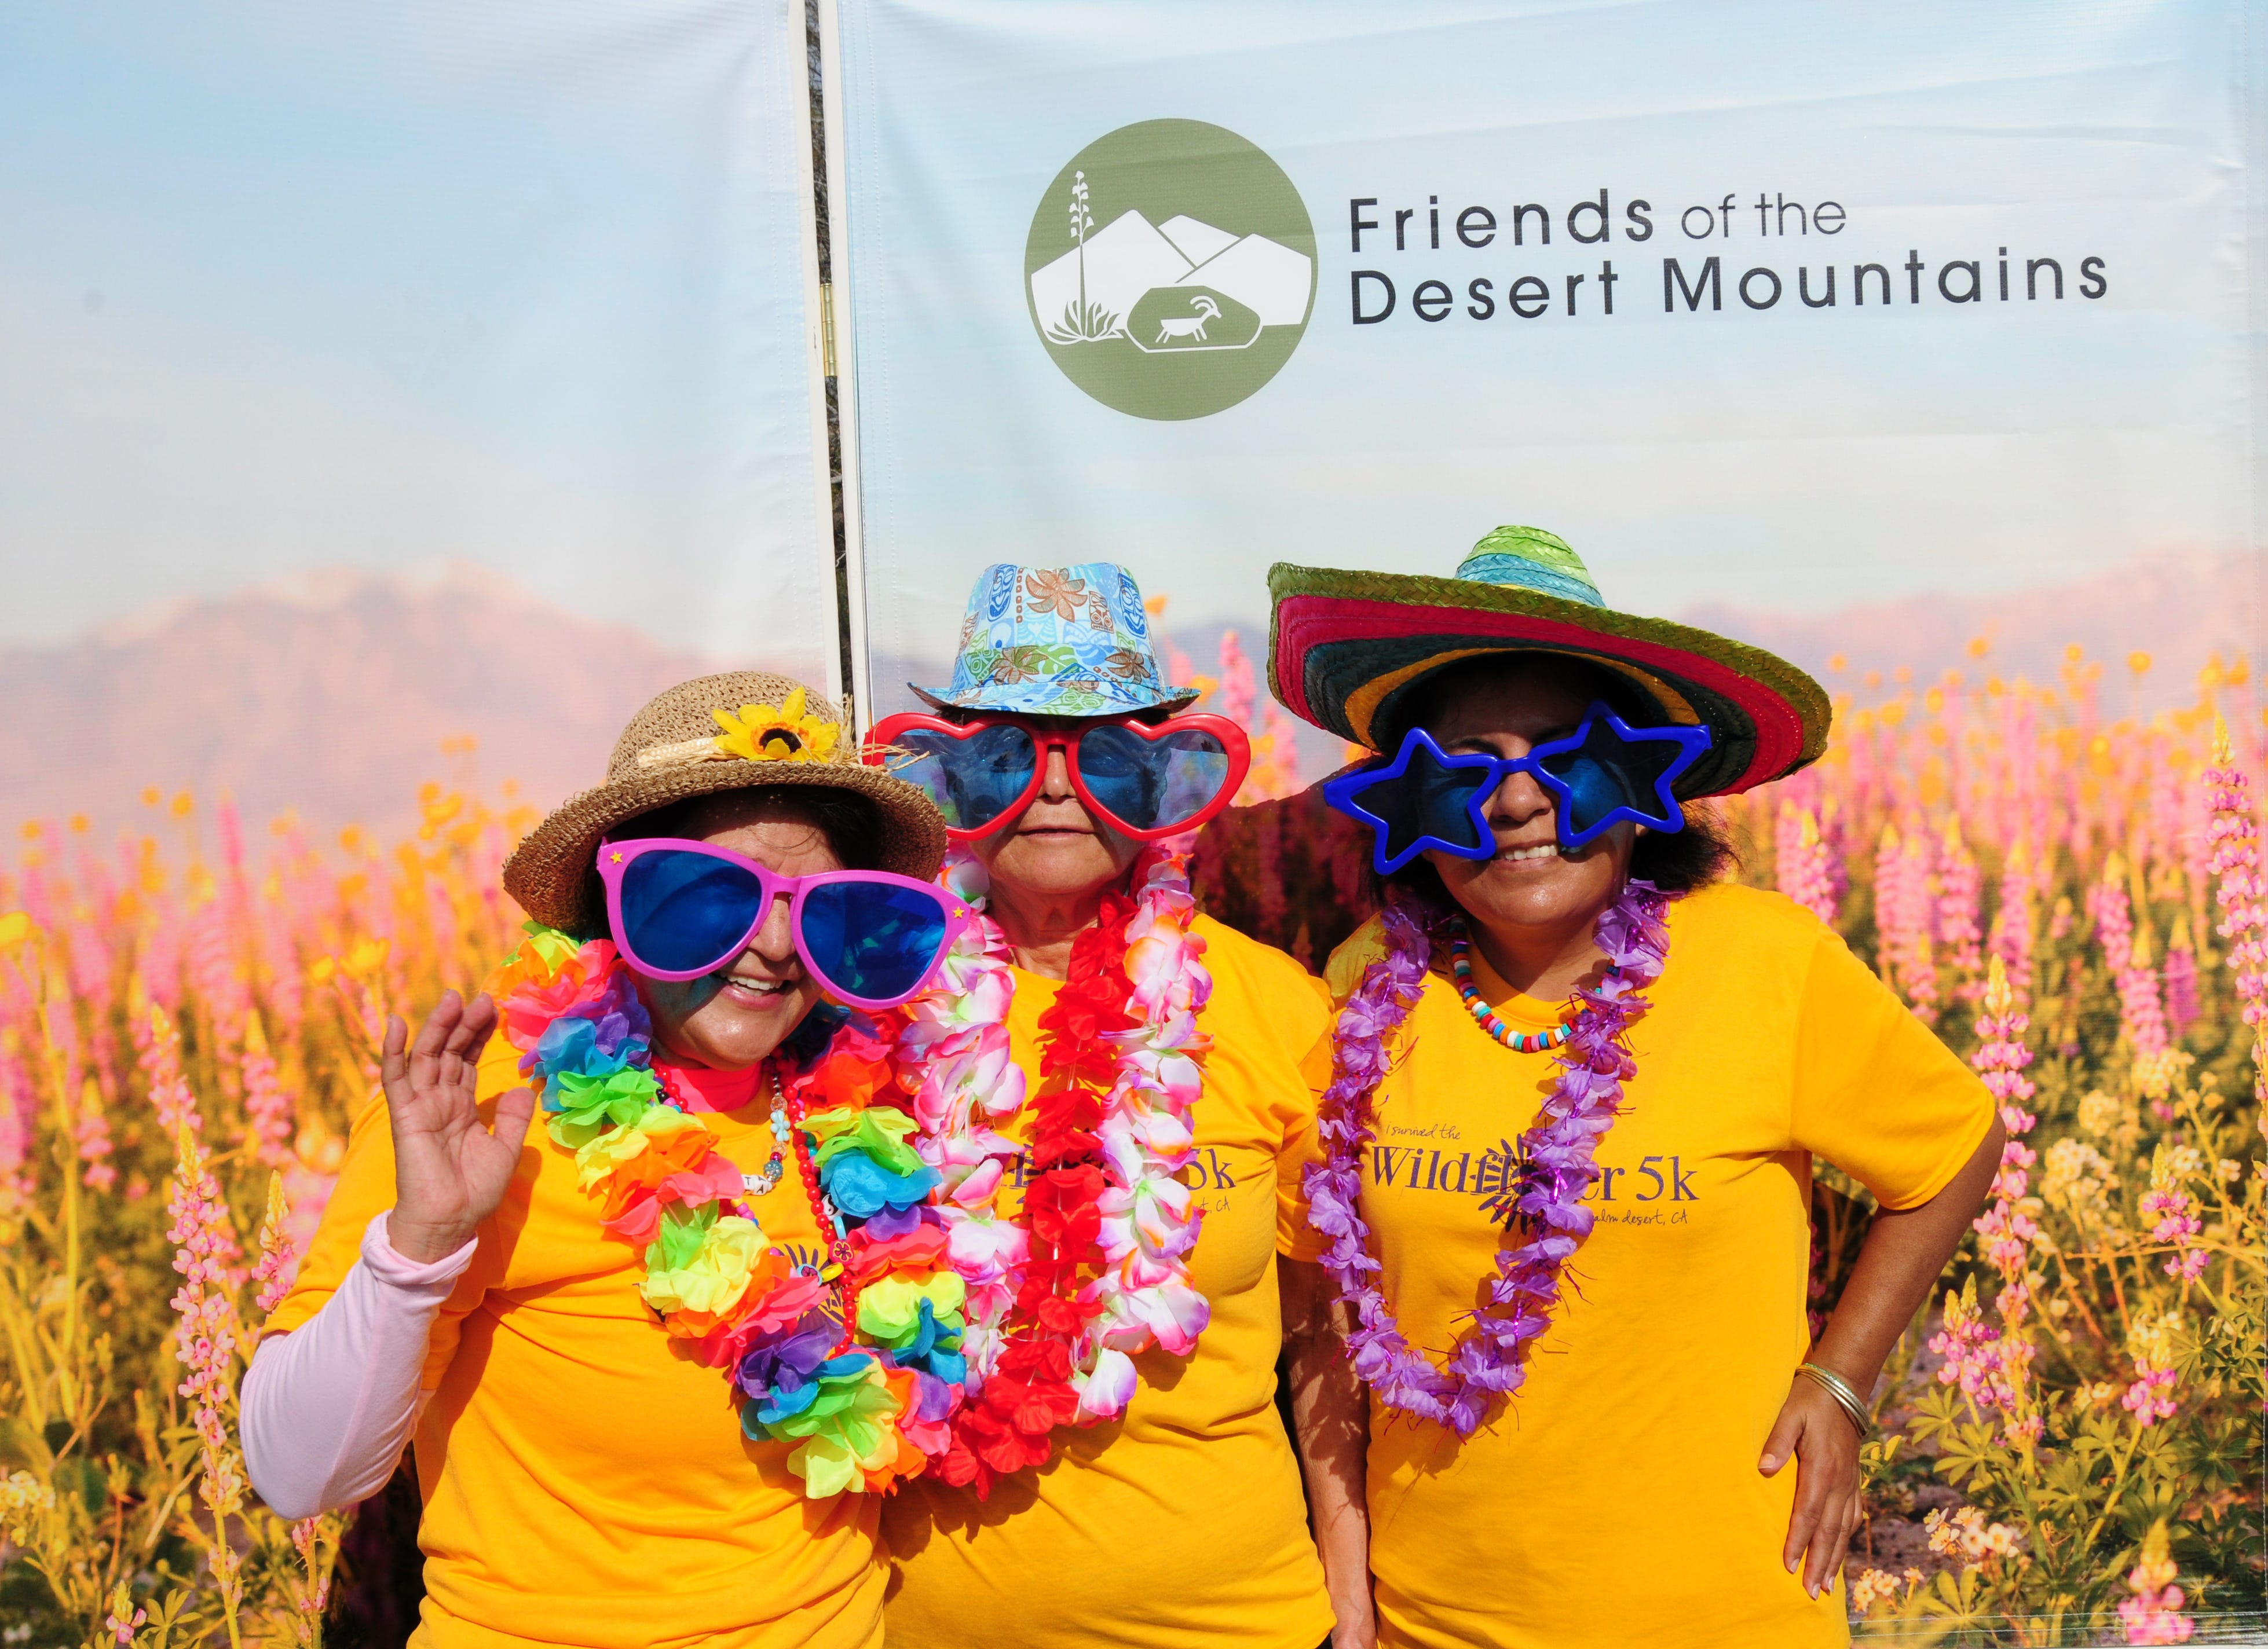 Don T Miss These Upcoming Events In The Coachella Valley